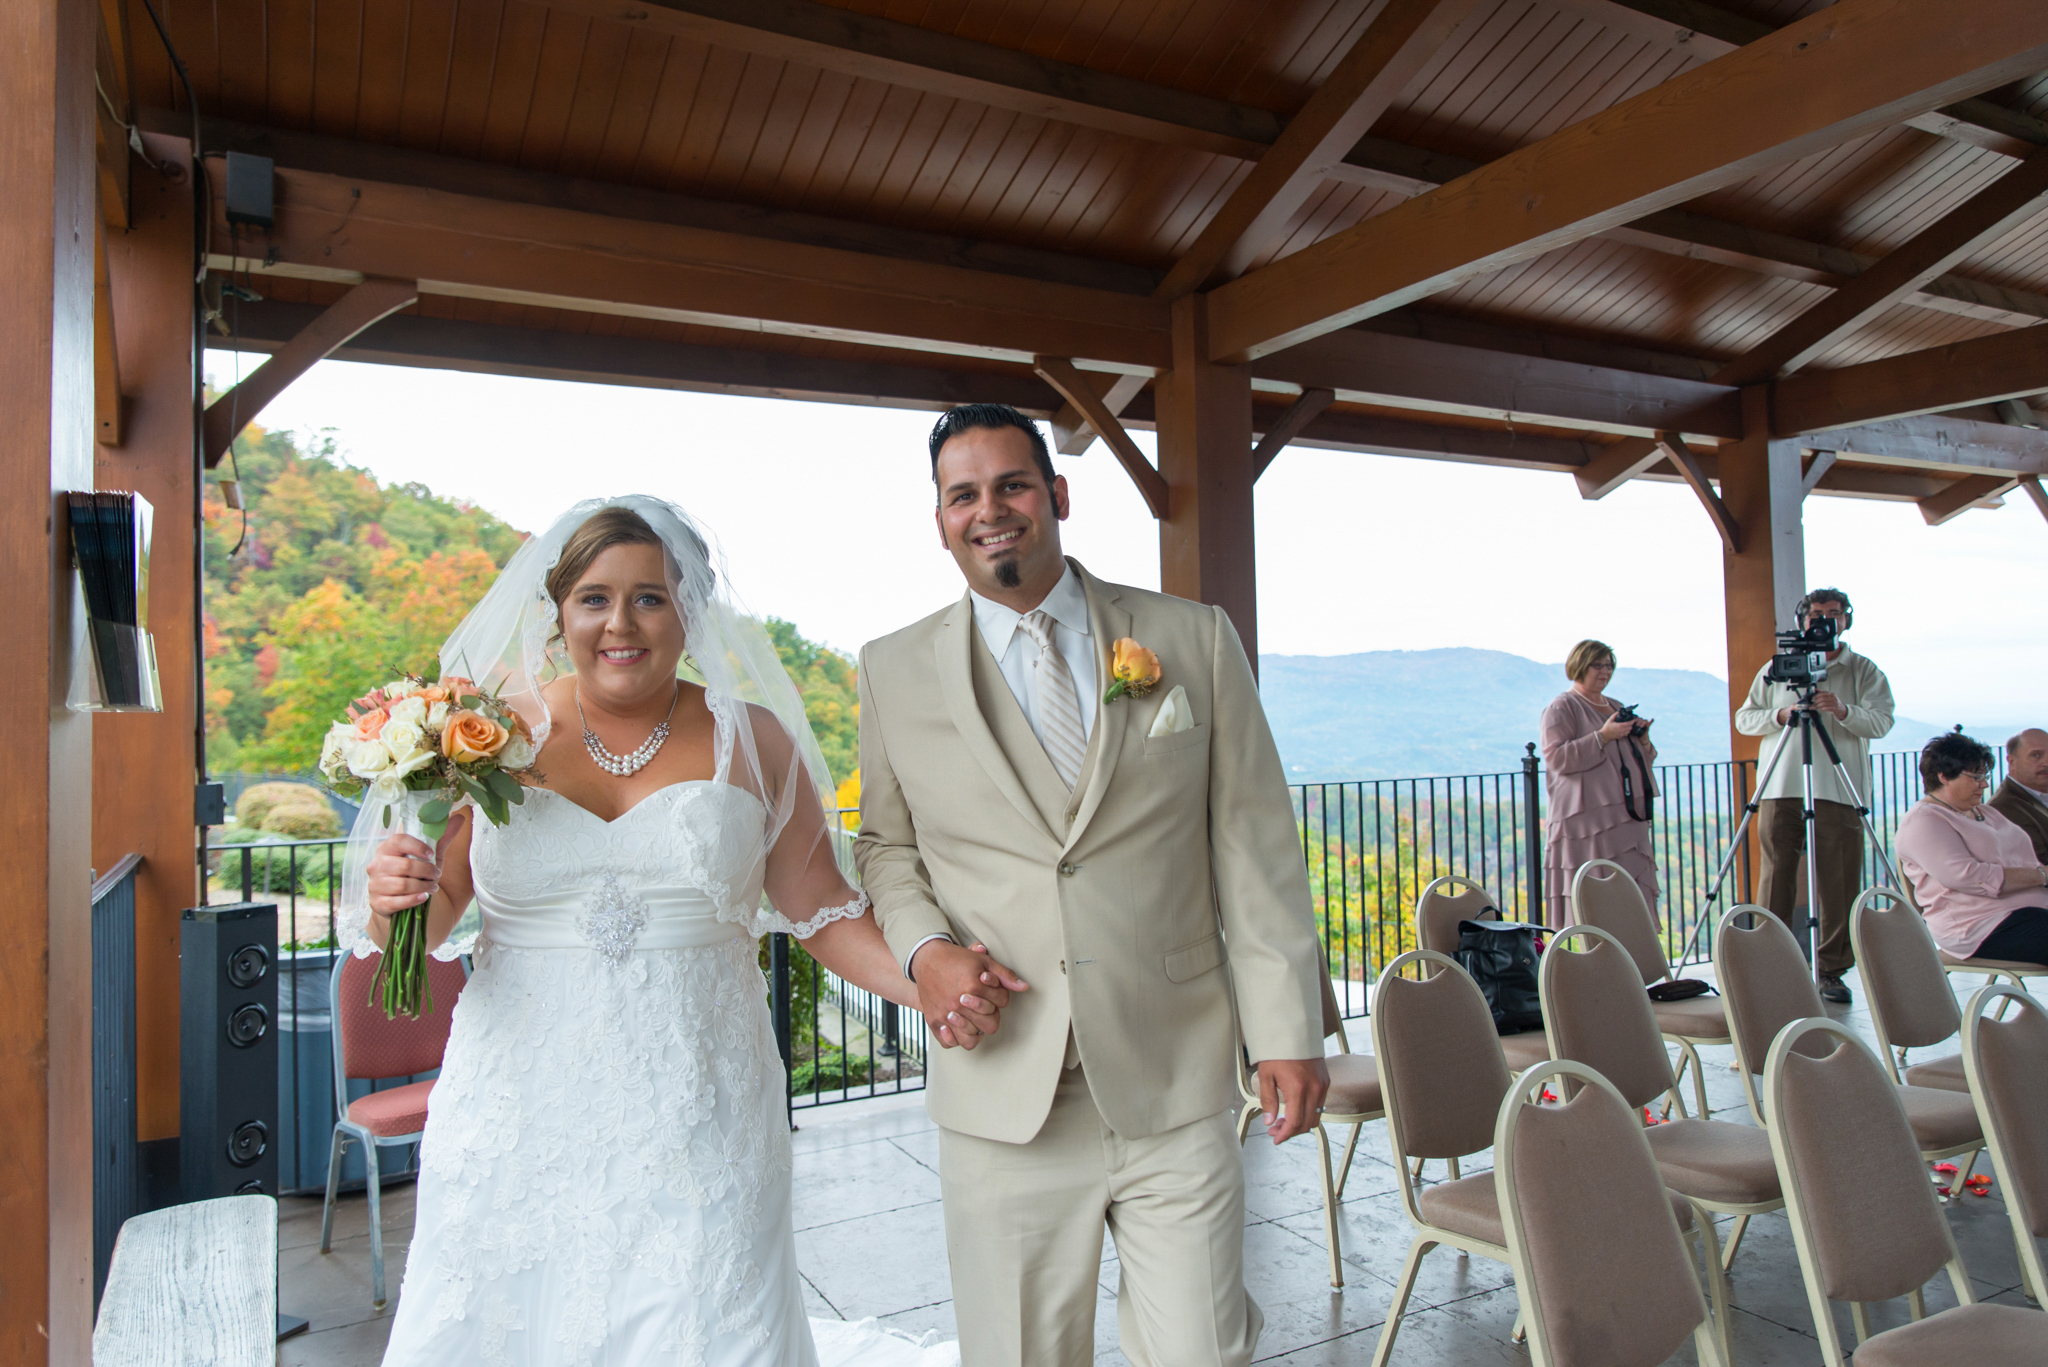 Bride and groom at Hearthside at the Preserve wedding